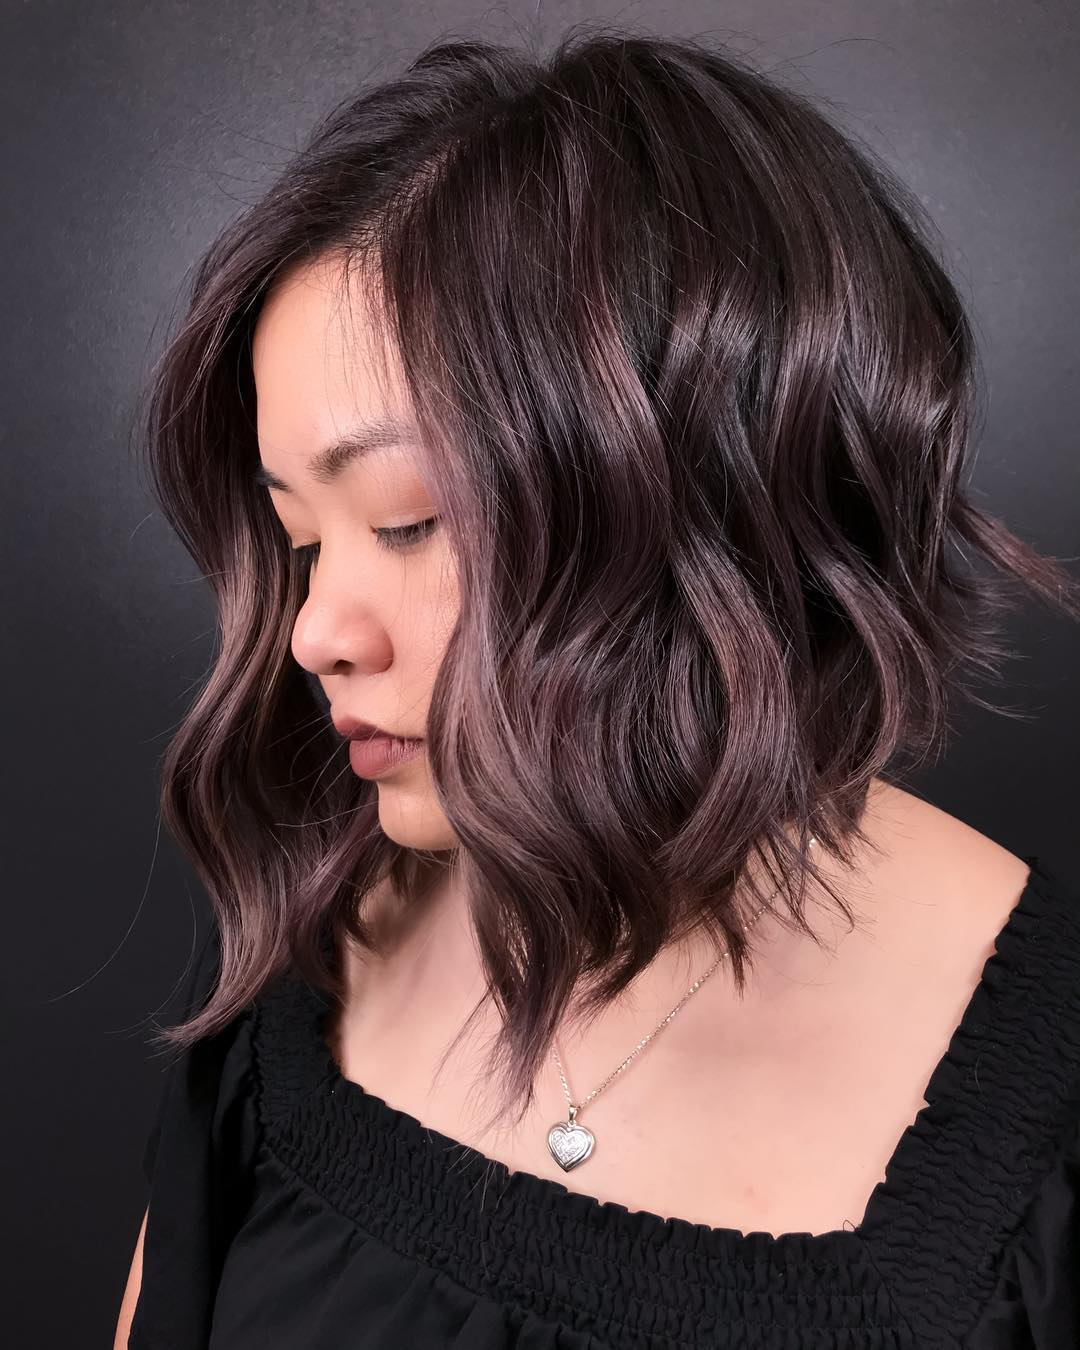 Inverted Dark Bob with Mauve Highlights